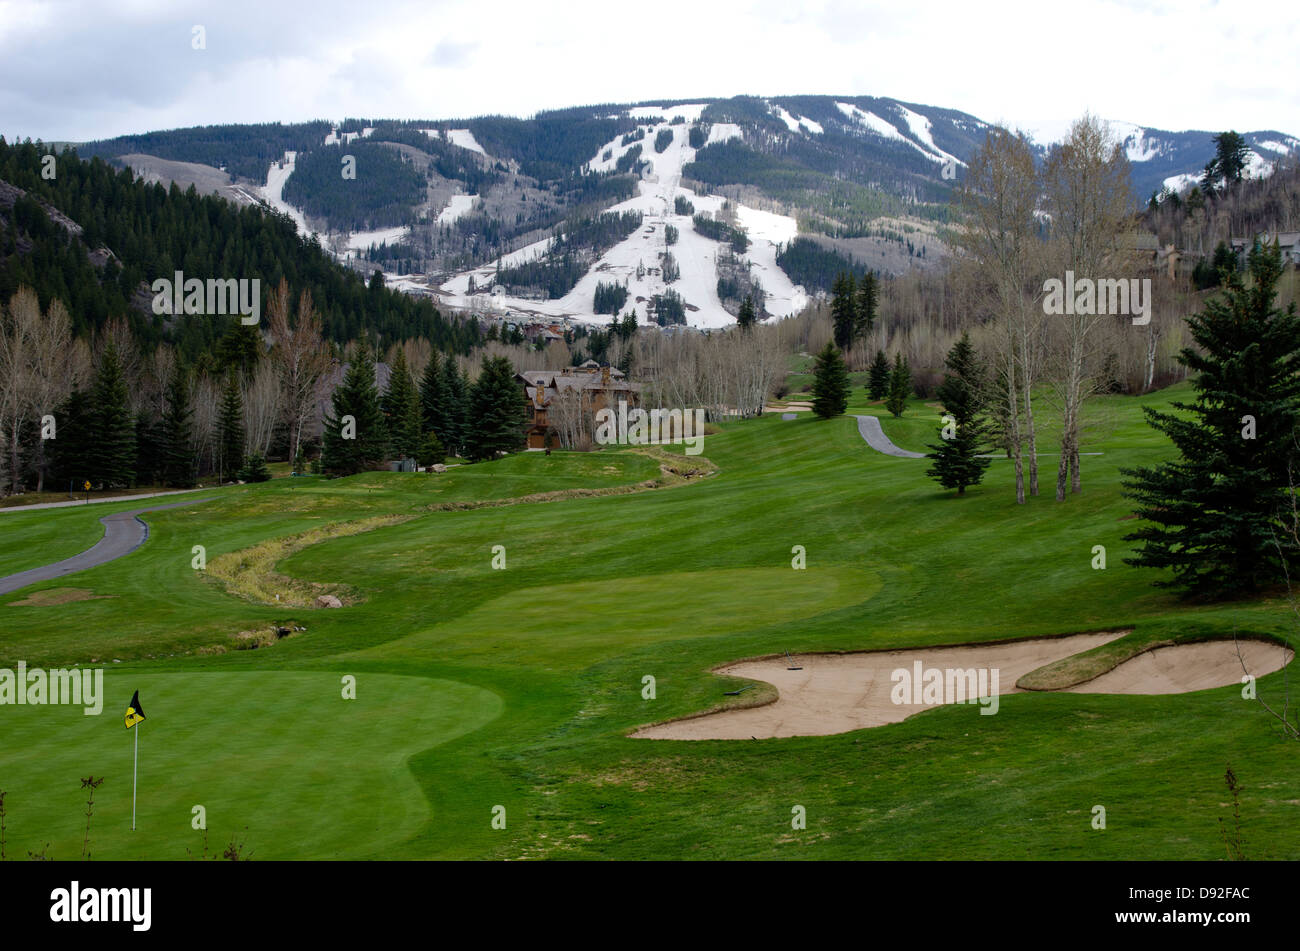 Combining two sports from separate seasons, a tourist can play golf on the Beaver Creek Golf Course on the same - Stock Image